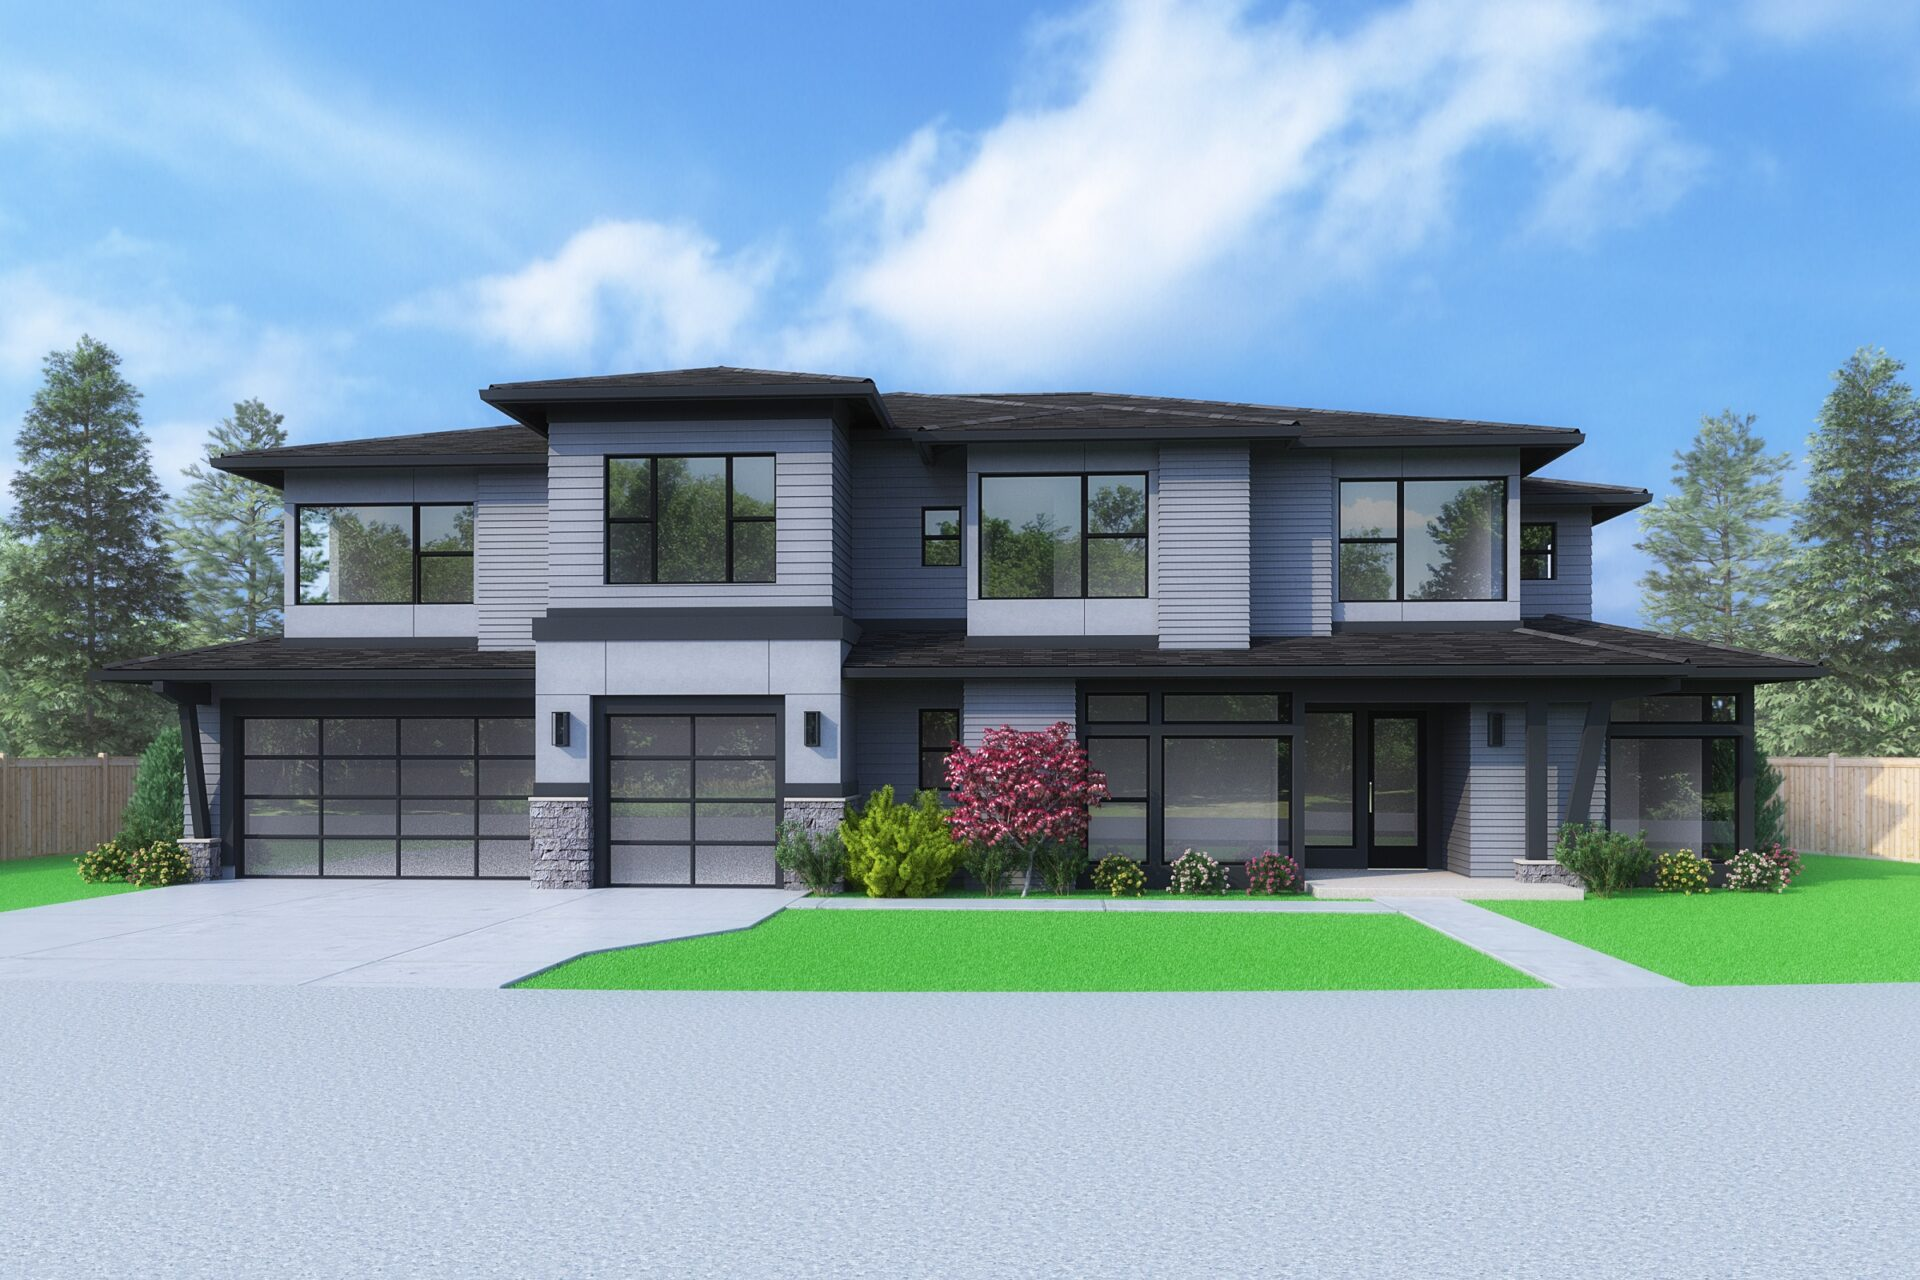 View our new luxury home construction on 5645 118th Ave SE, in Bellevue, WA from MN Custom Homes